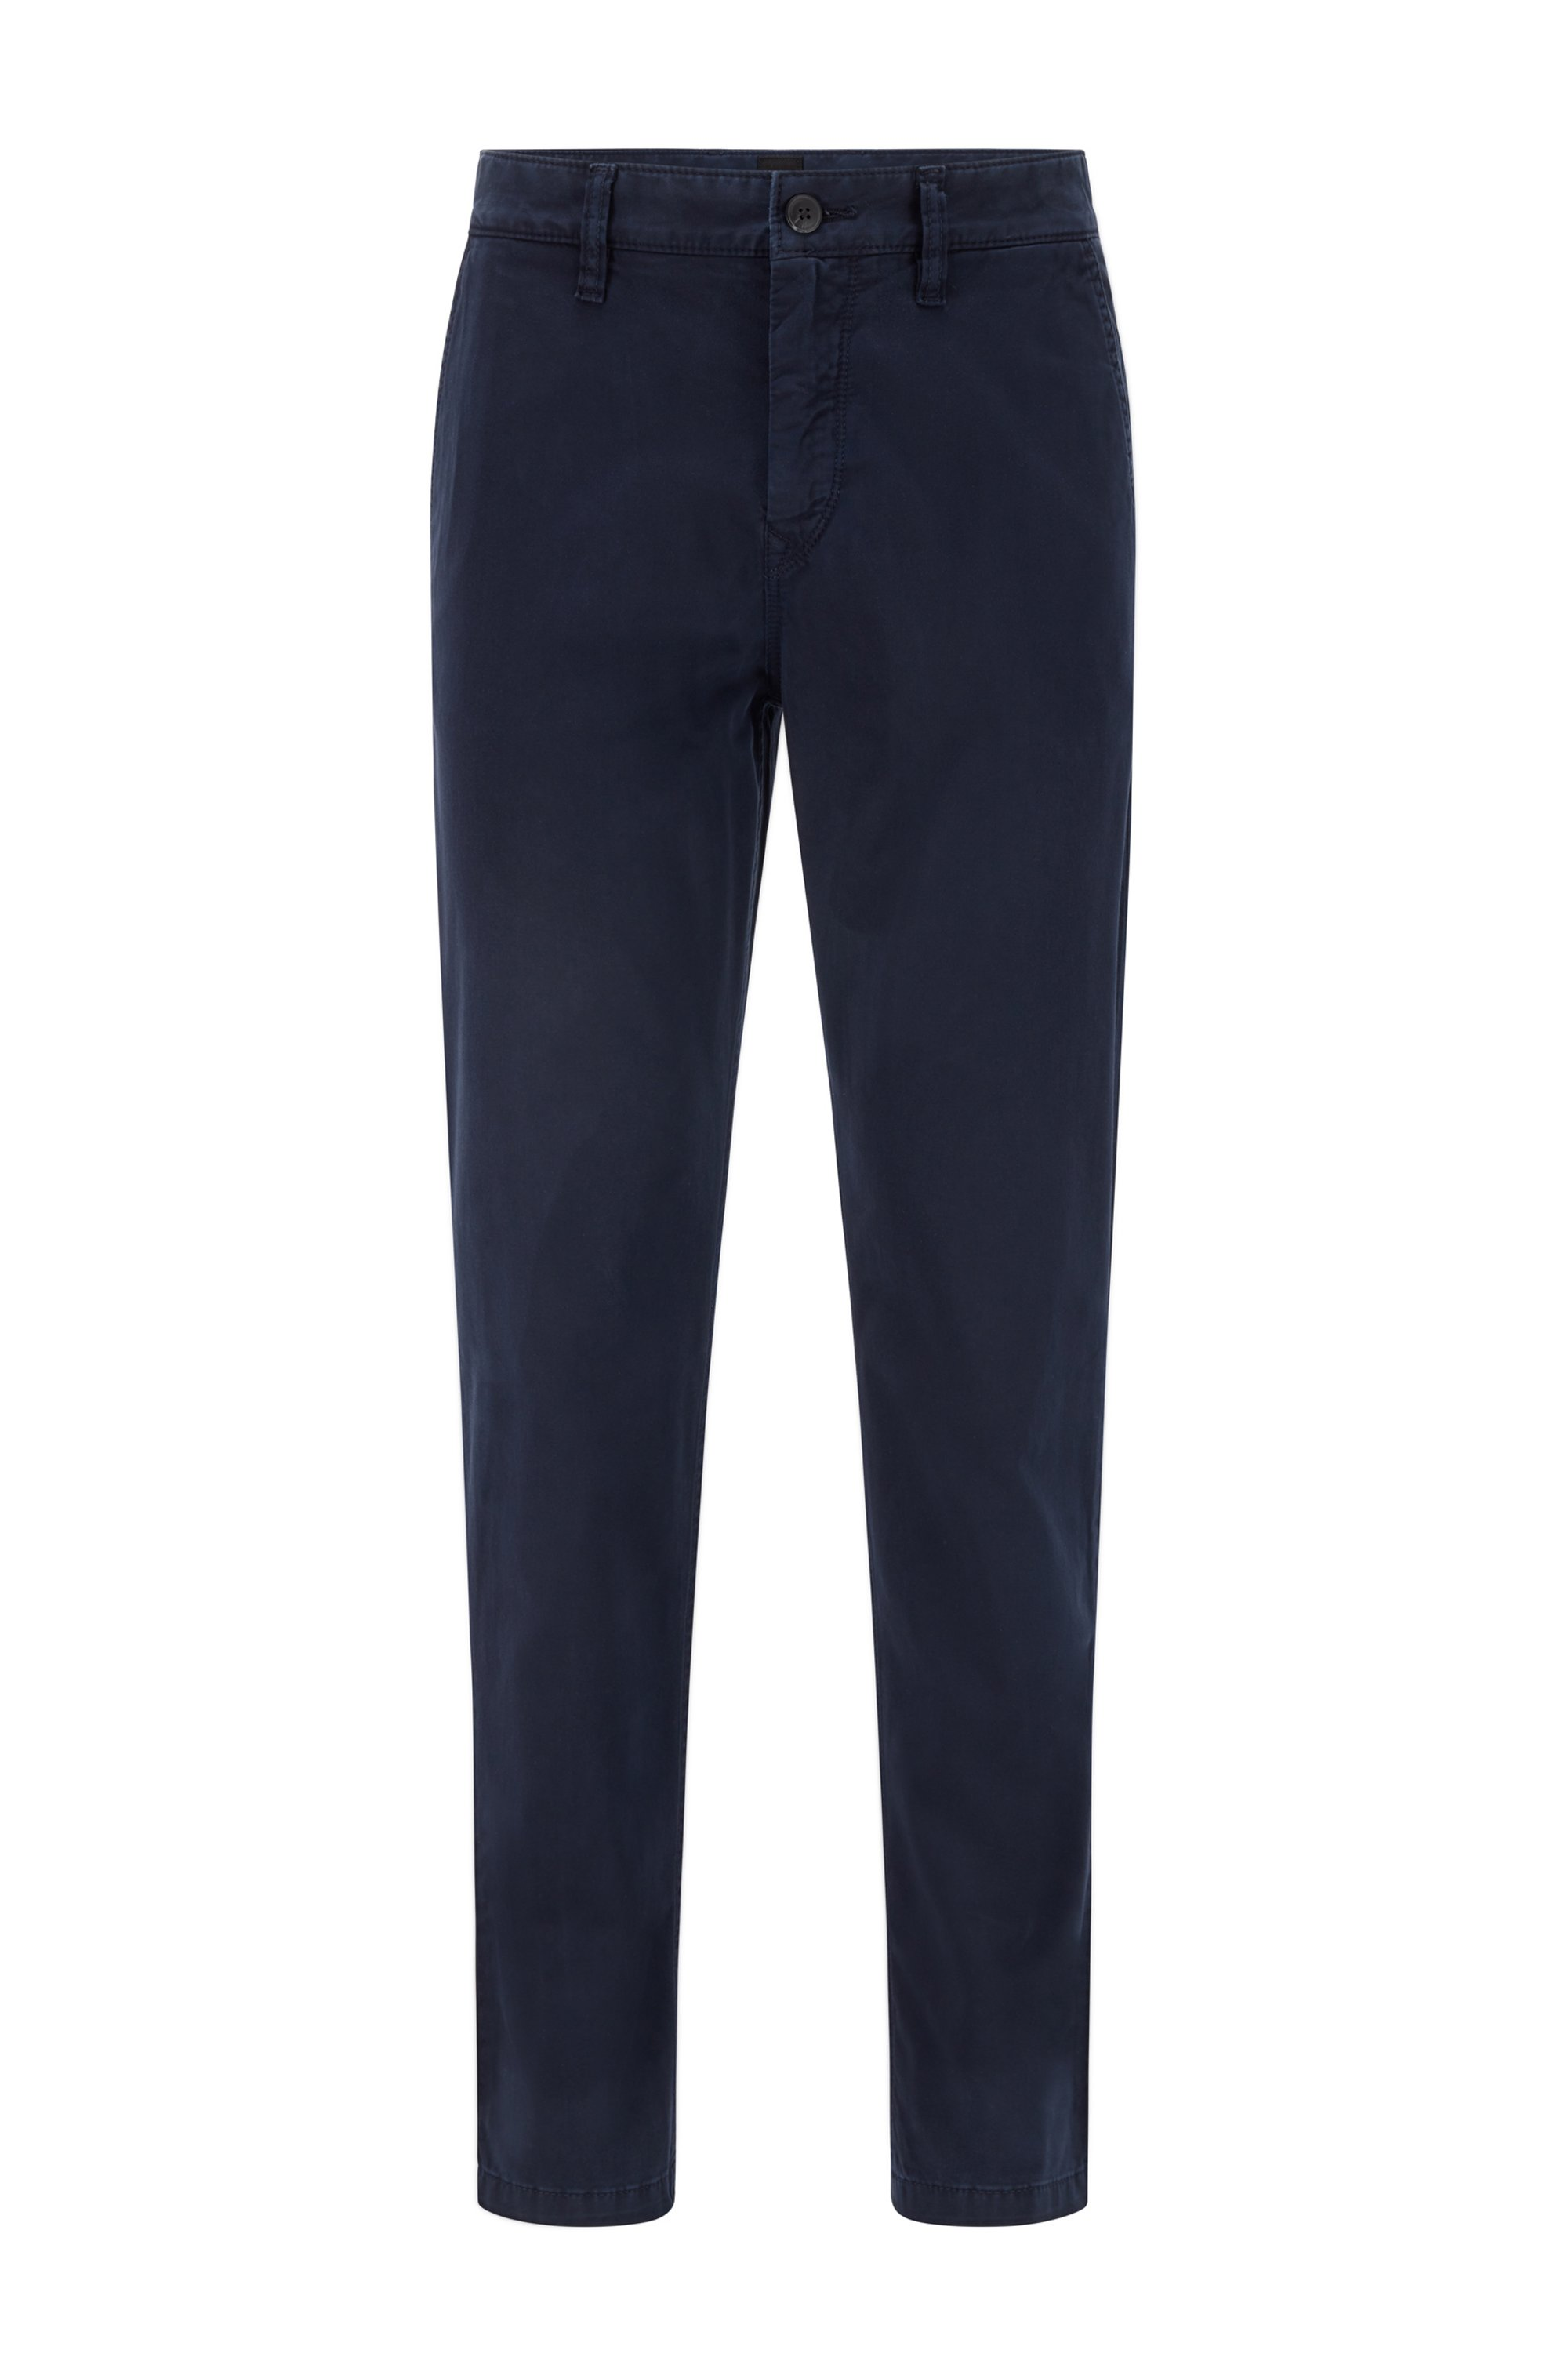 Chino Tapered Fit en satin de coton stretch brossé, Bleu foncé